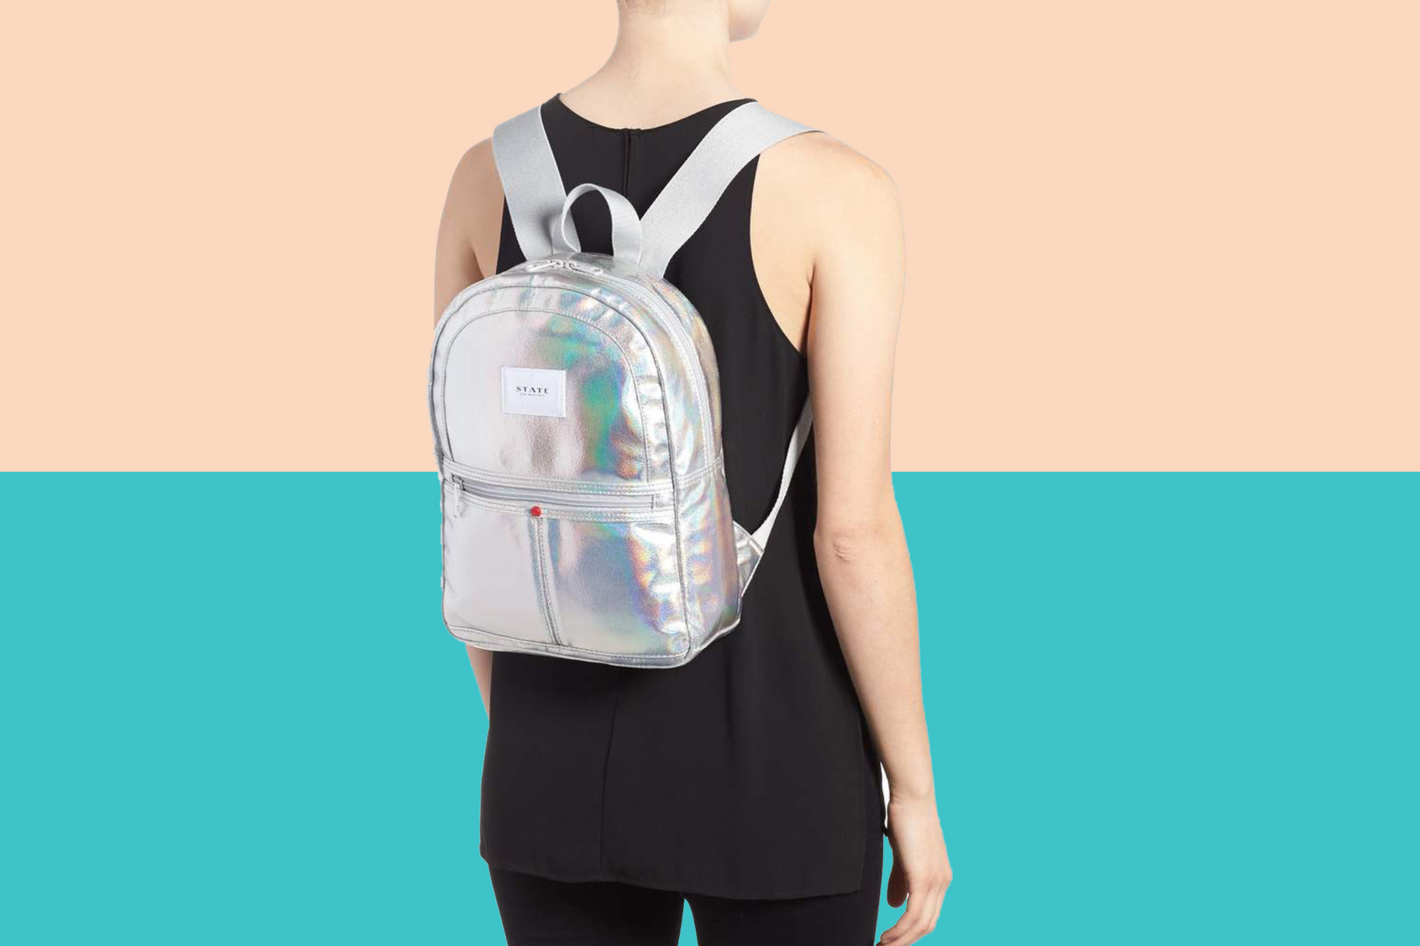 State Starrett City Mini Kane Iridescent Backpack